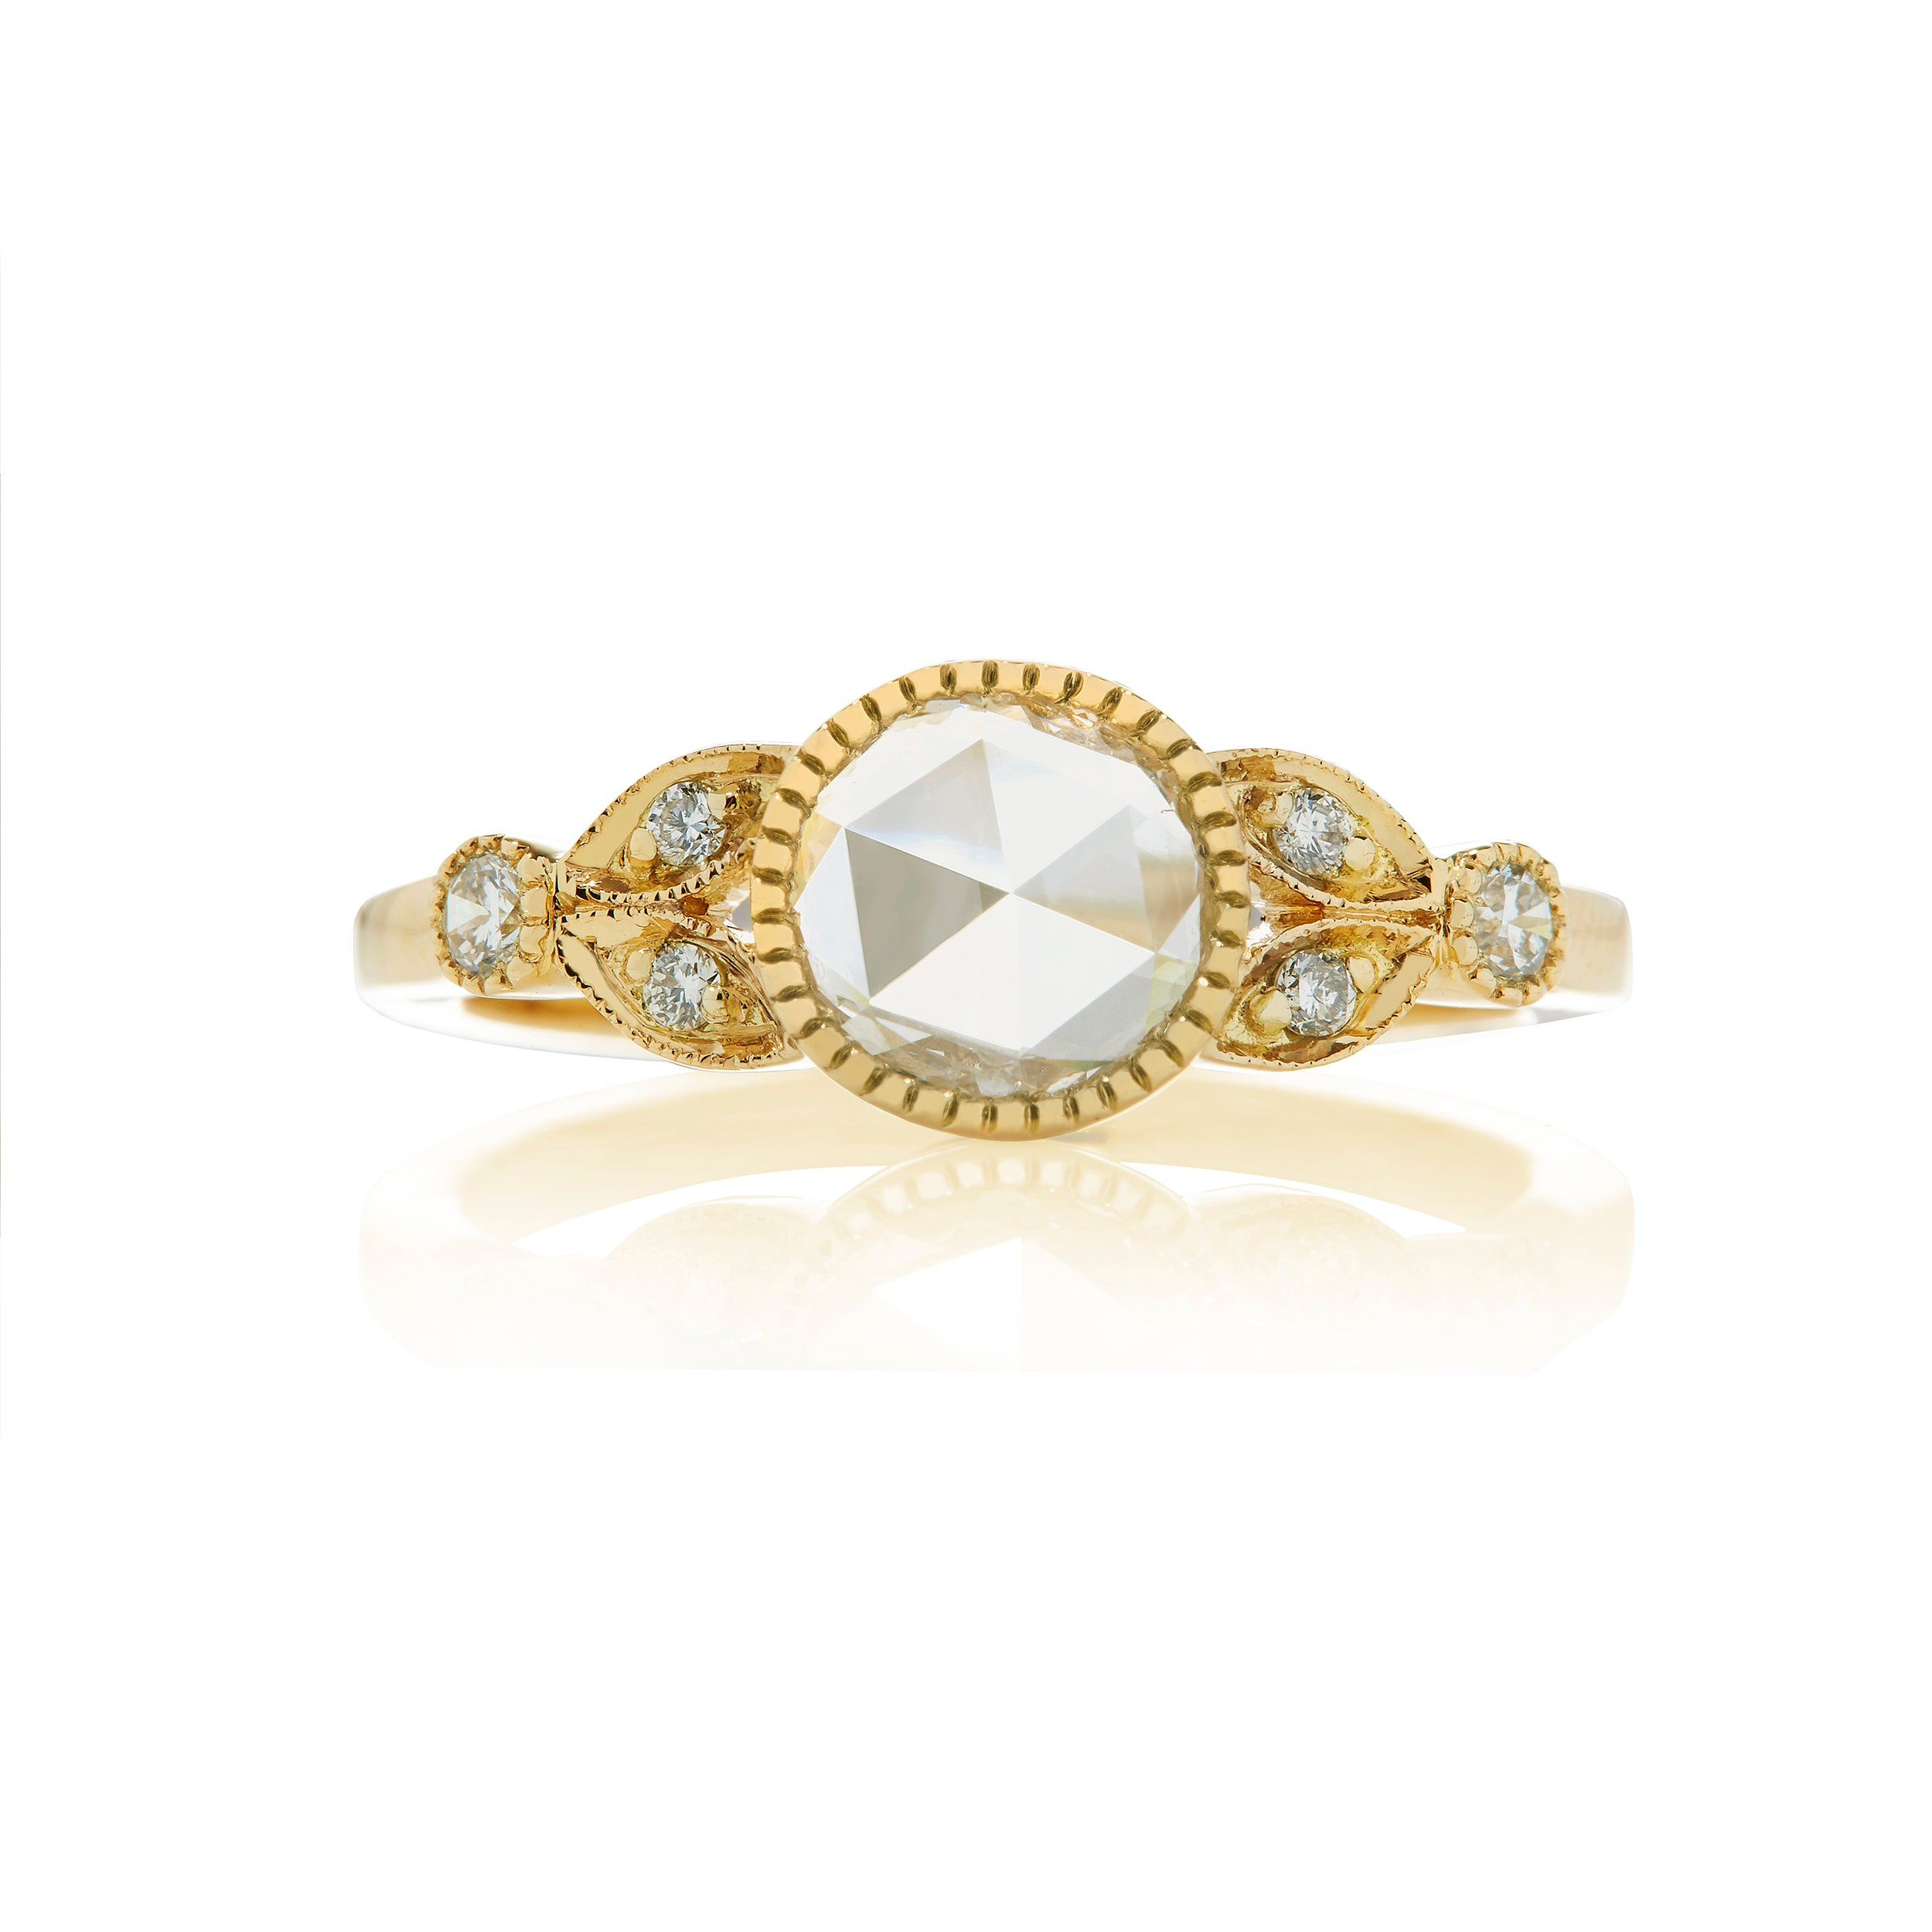 The Evelyne Ring